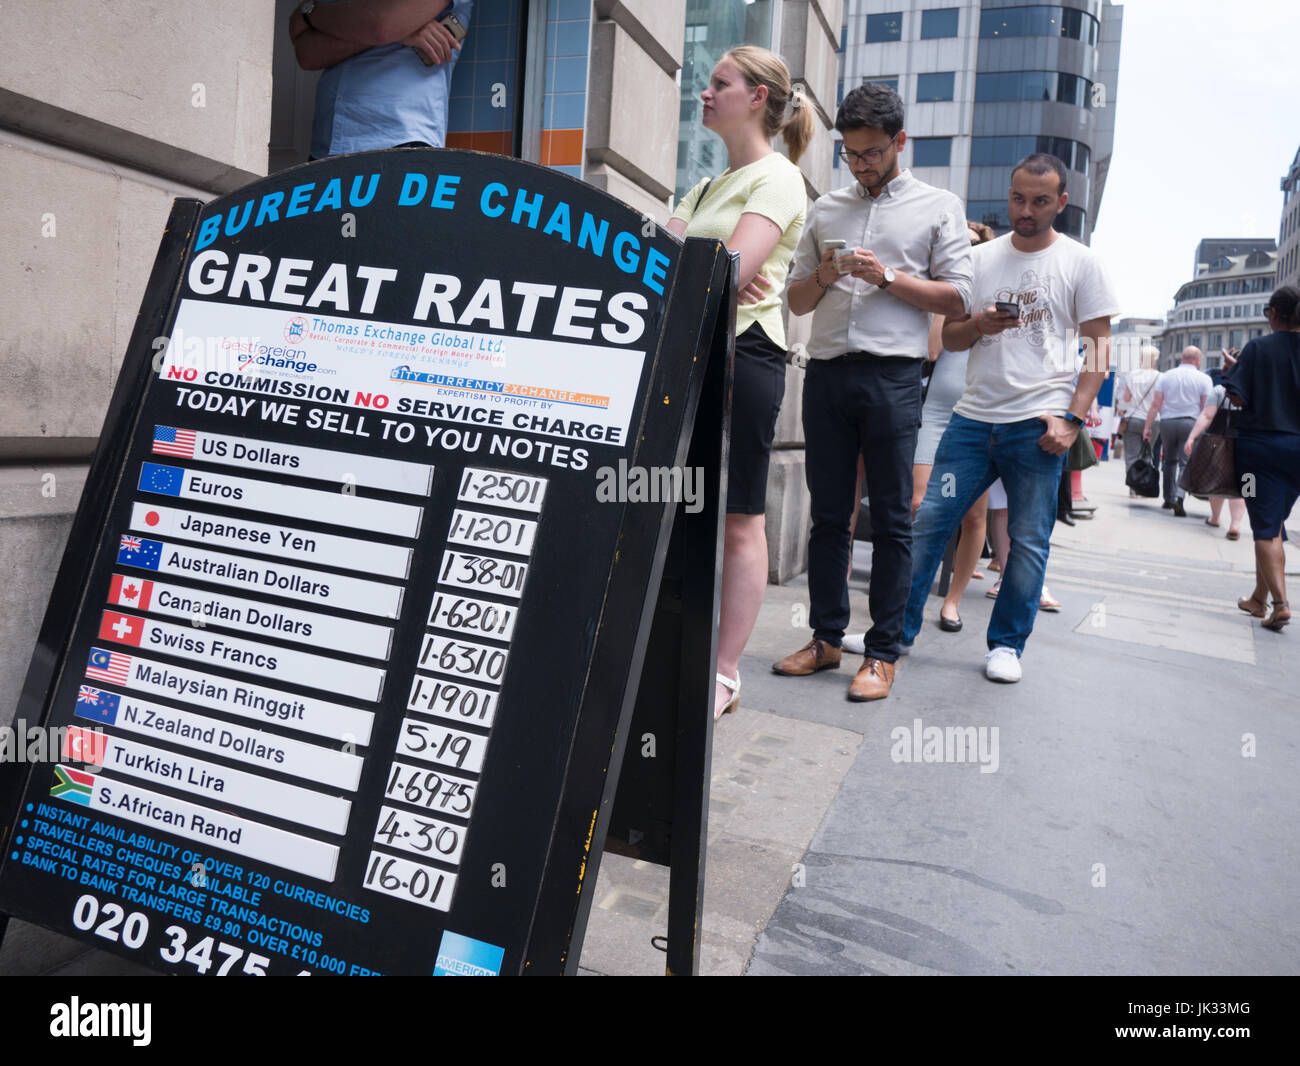 Exchange Rate Board High Resolution Stock Photography And Images Alamy